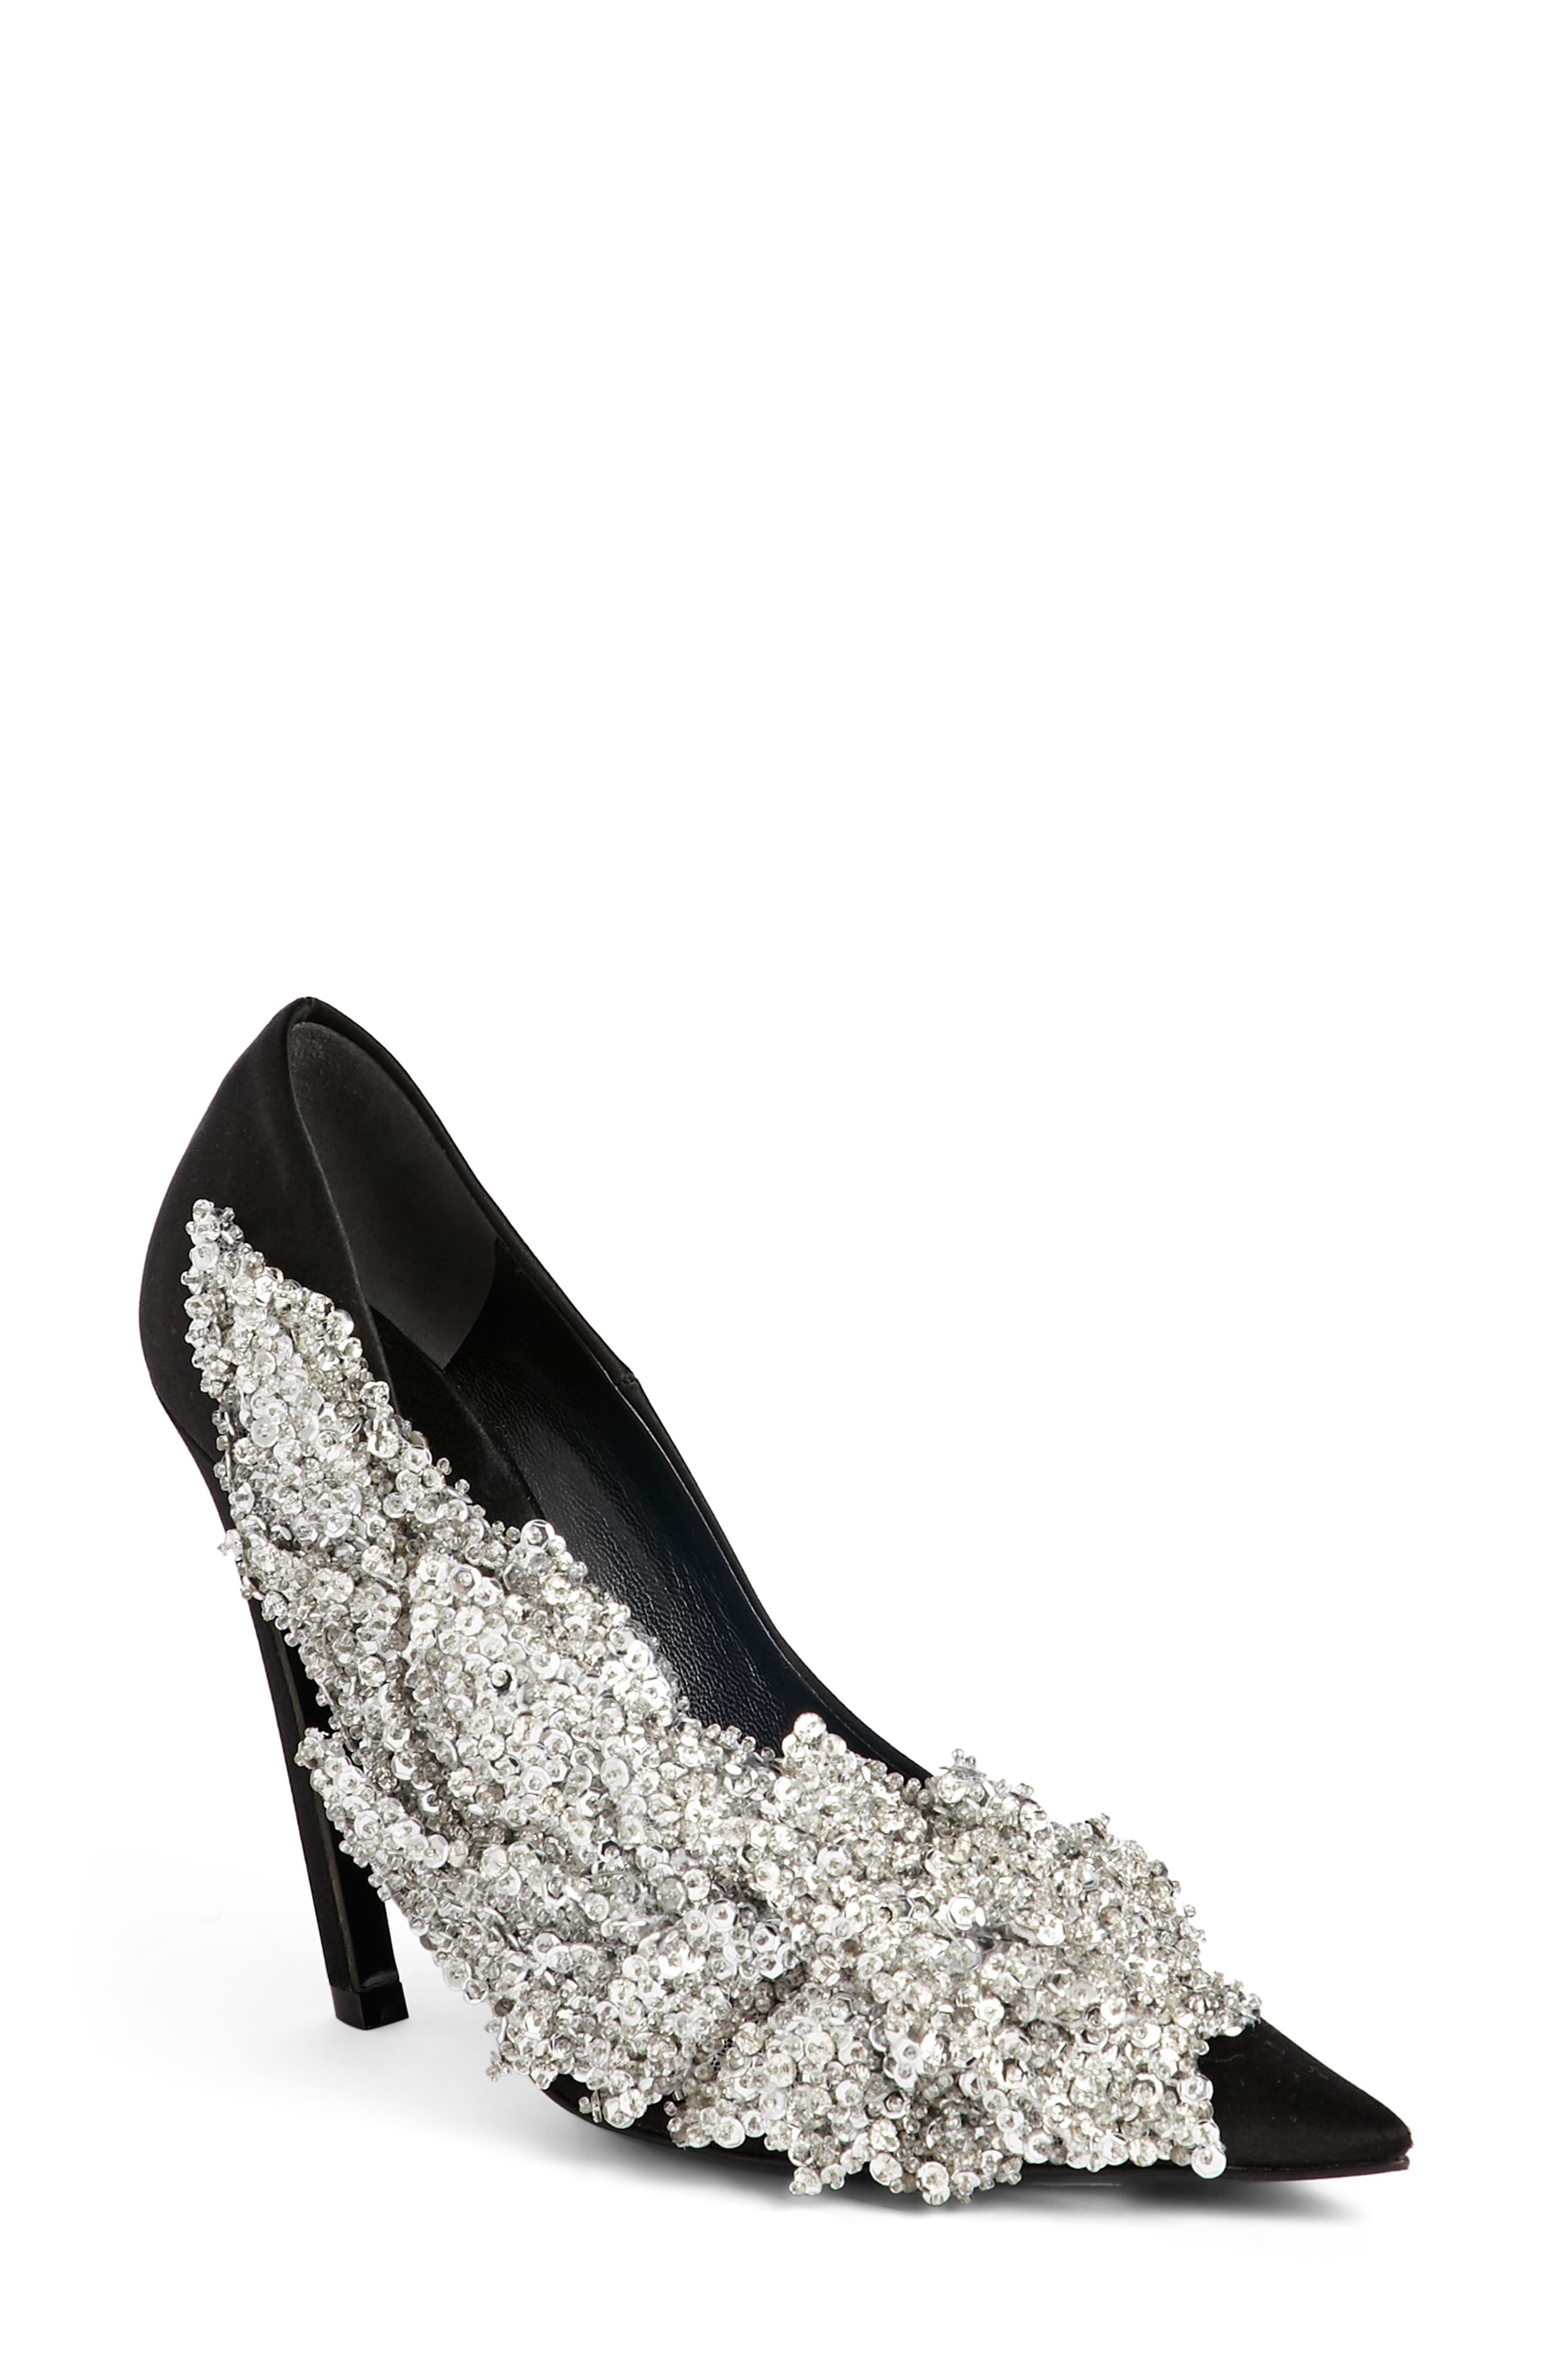 Balenciaga Embellished Pointy Toe Pump (Women)